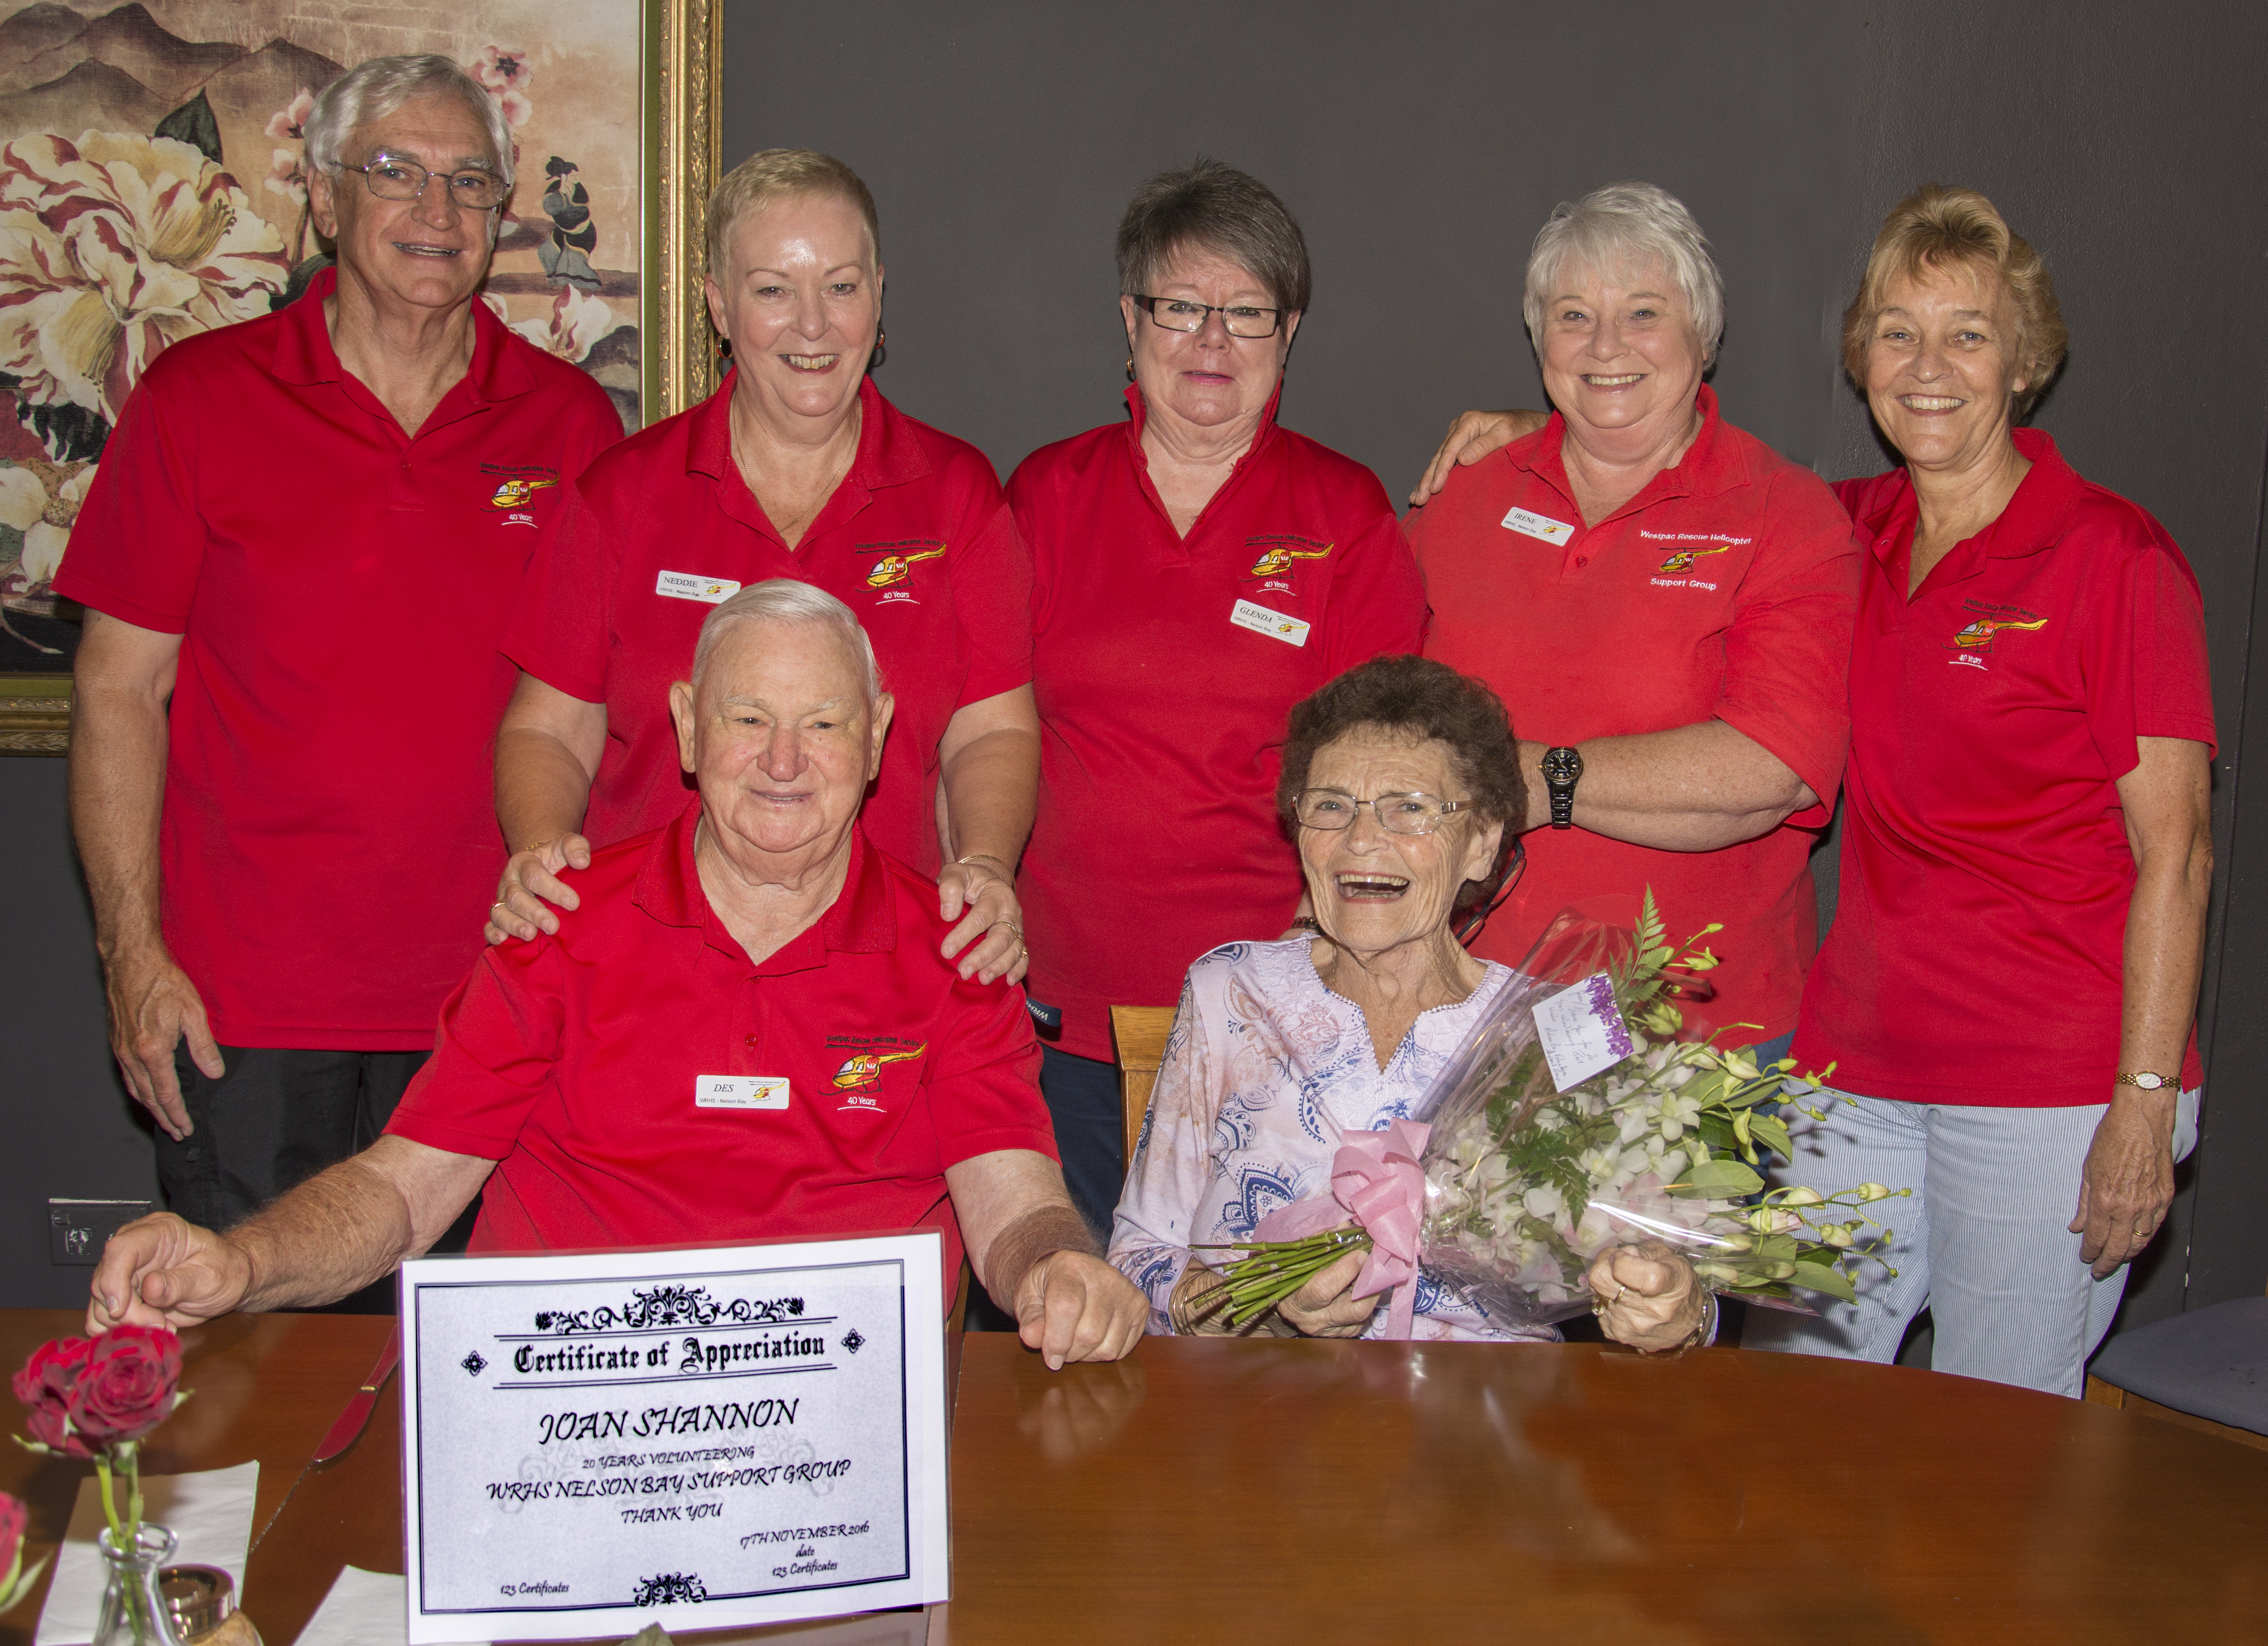 Joan Shannon surrounded by dedicated Westpac Helicopter volunteers. Photo by: Square Shoe Photography